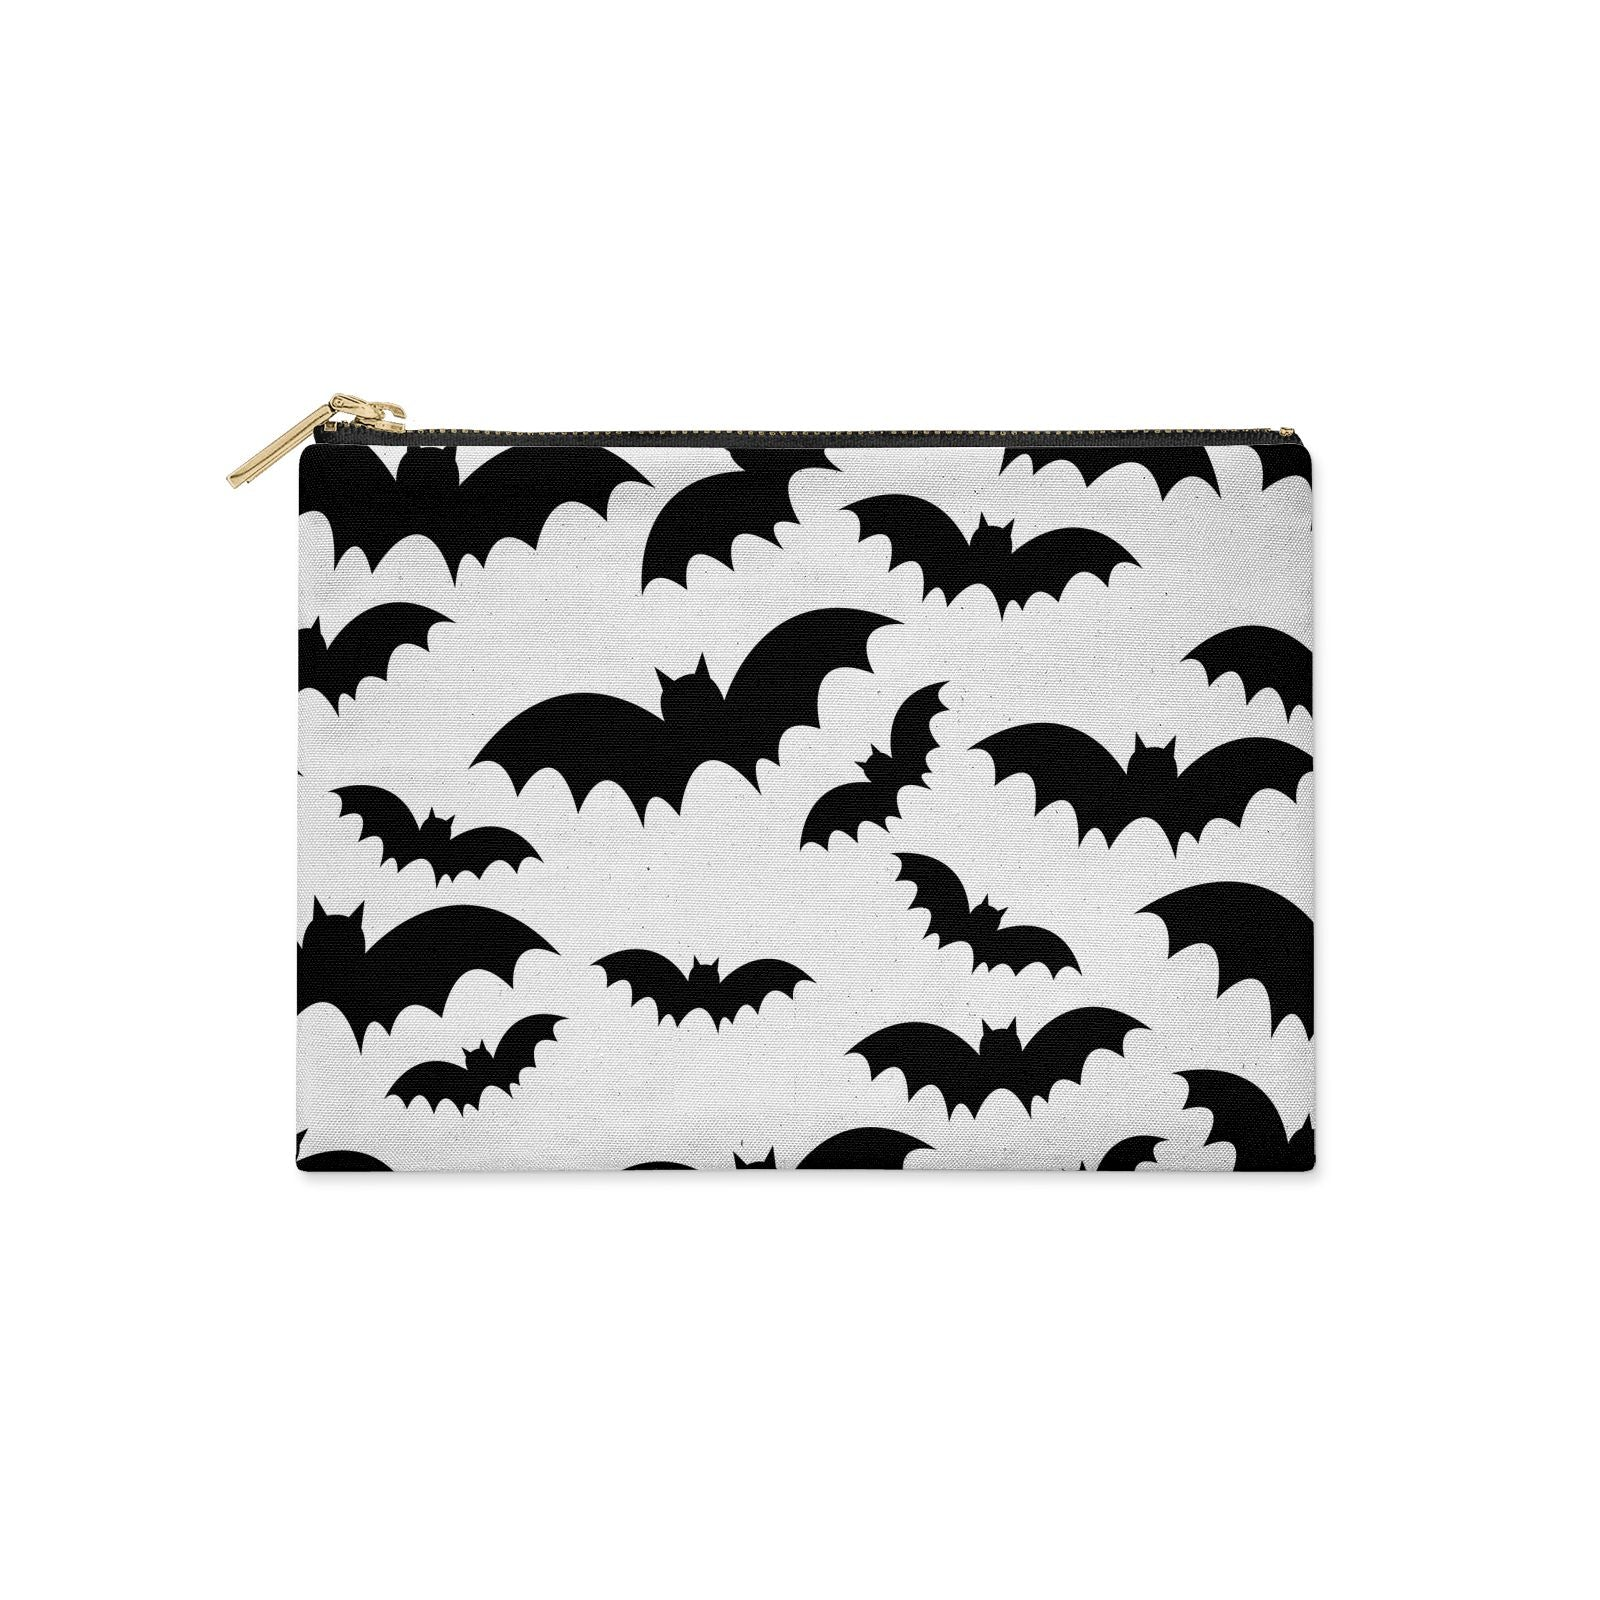 Bat Halloween Print Clutch Bag Zipper Pouch